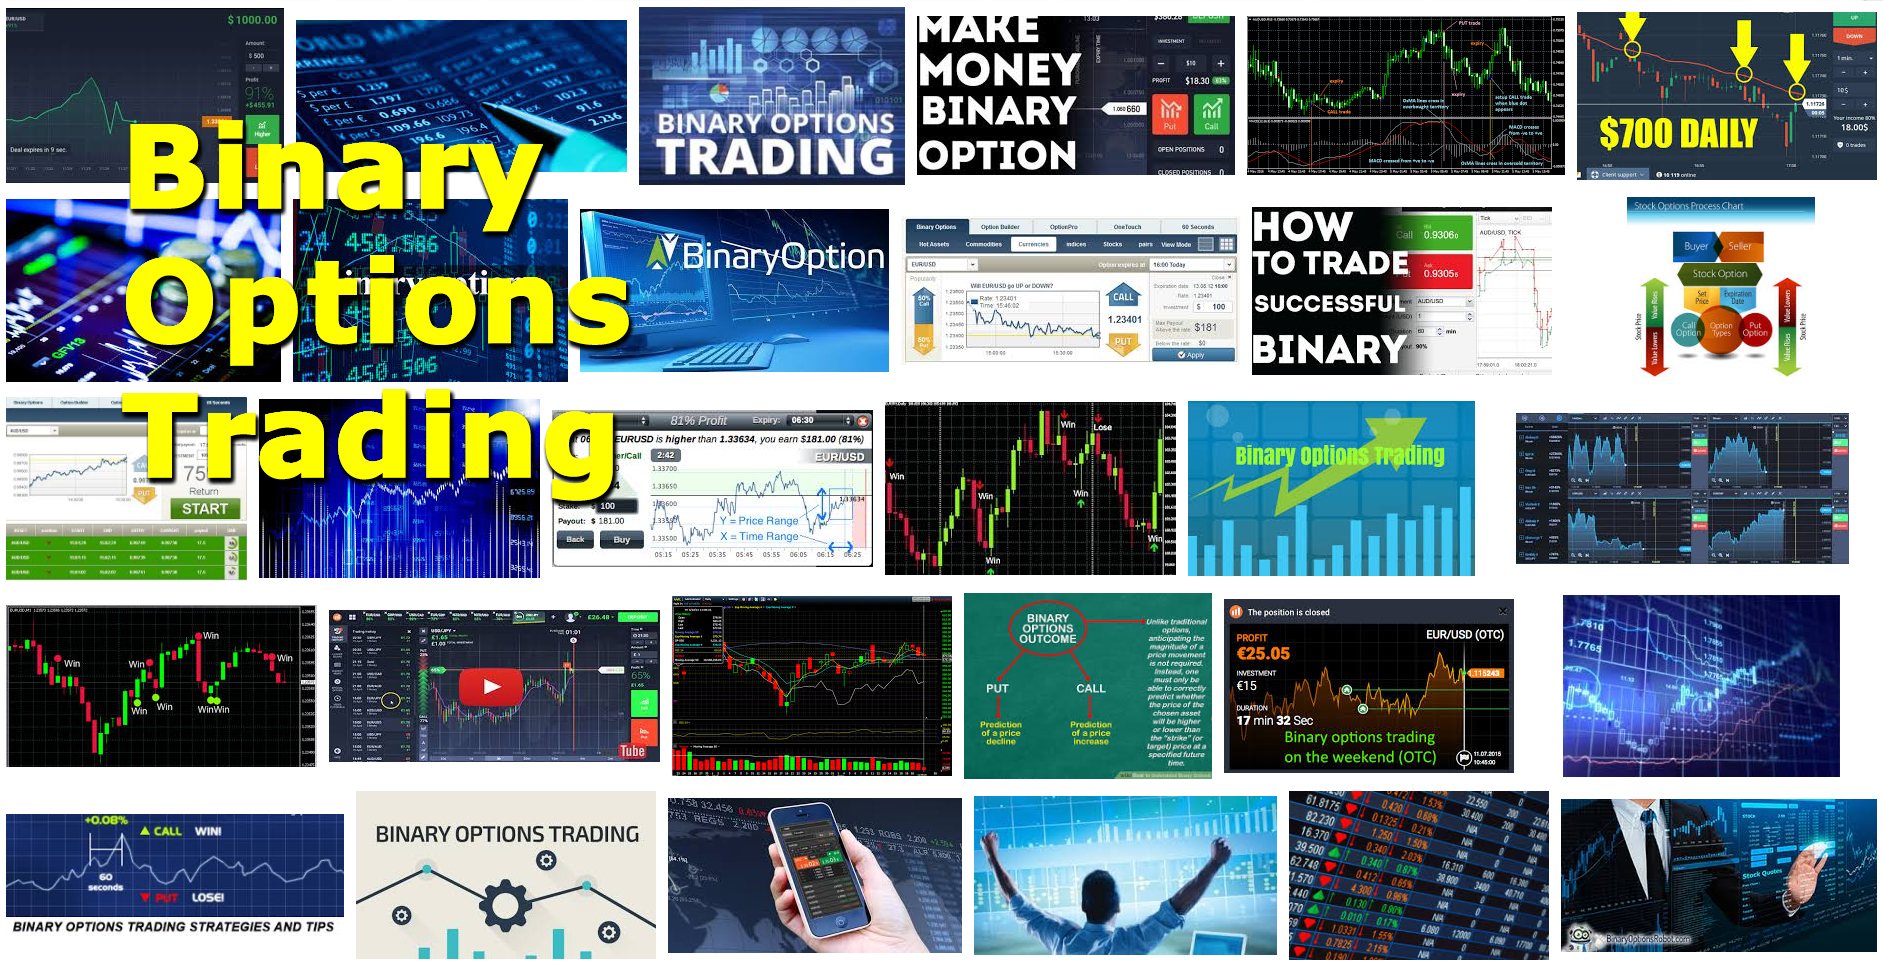 Binary options a good idea